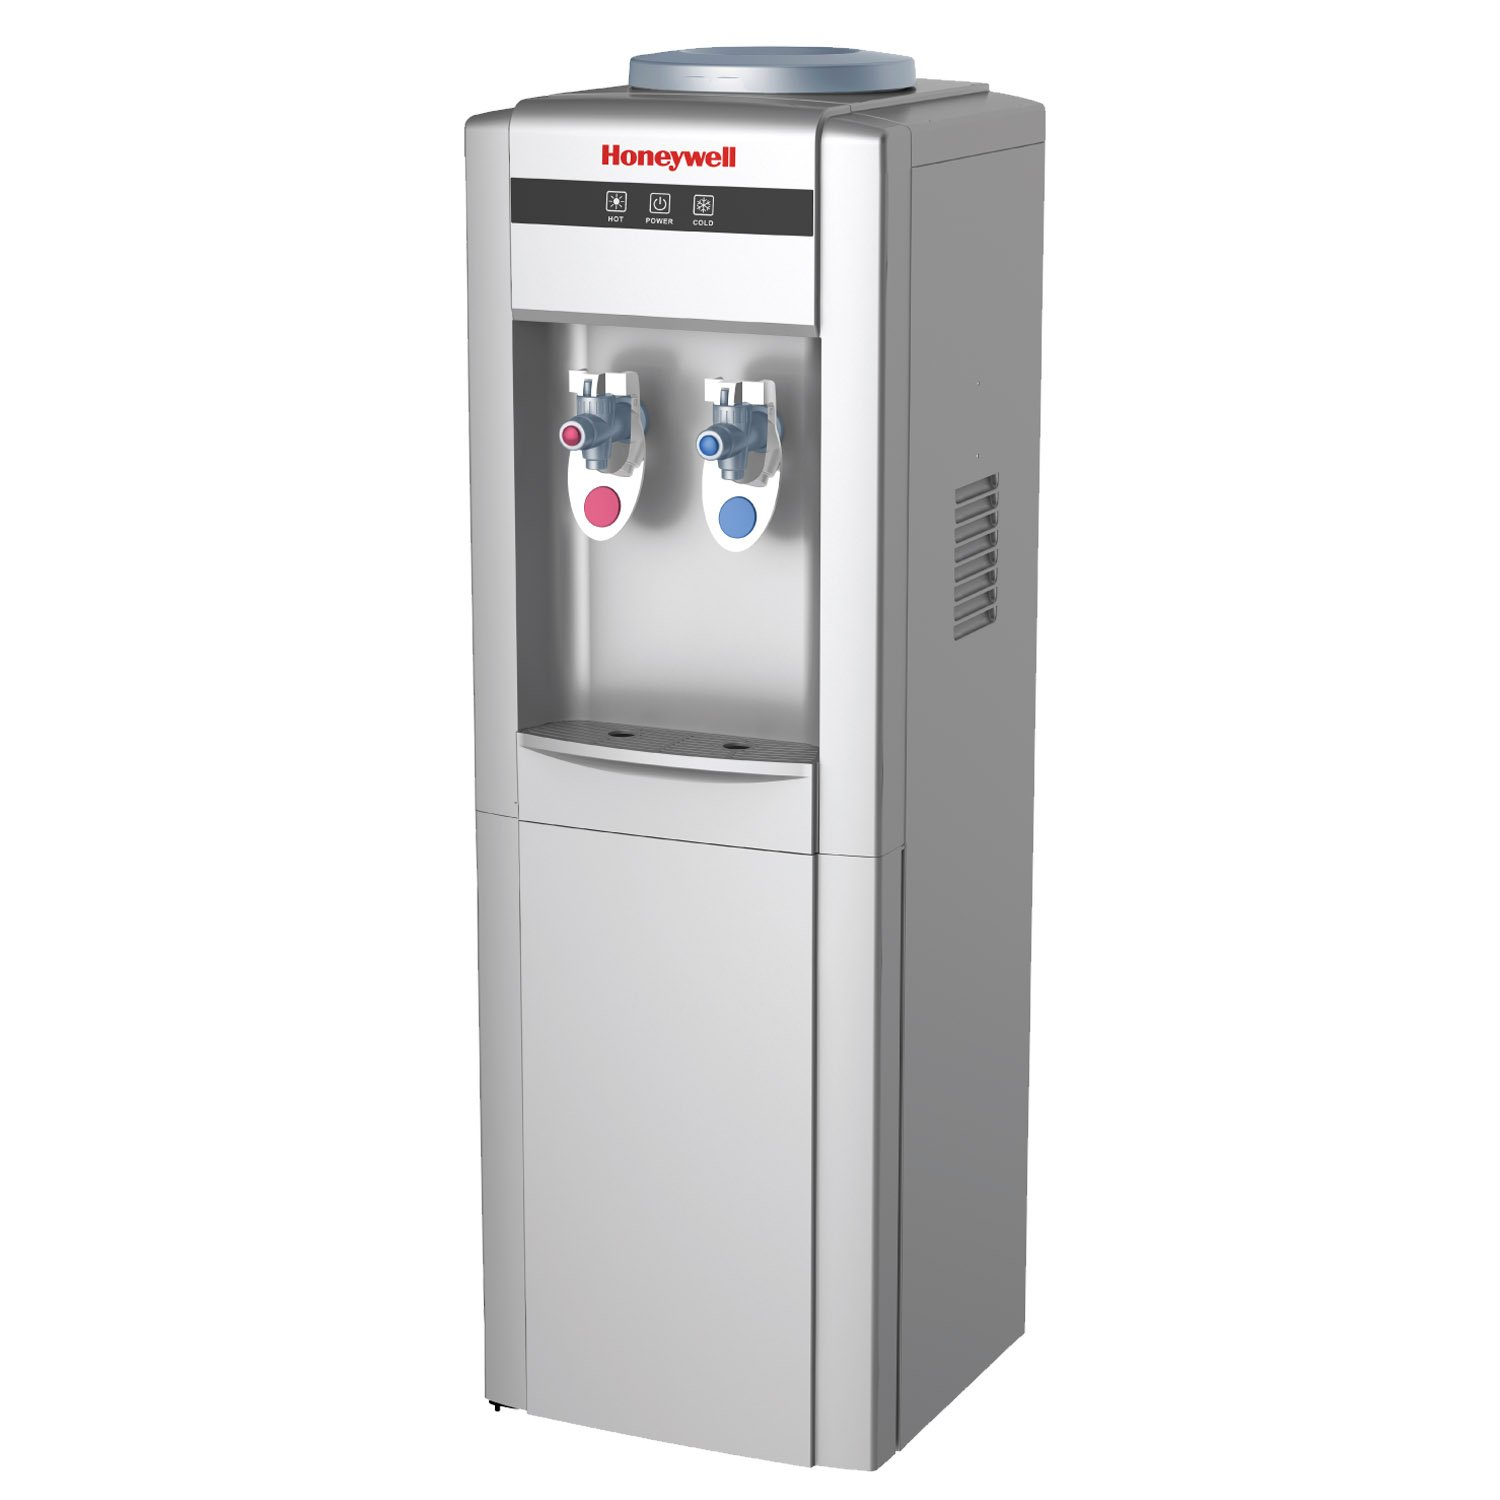 Honeywell HWB1052S Cabinet Freestanding Hot and Cold Water Dispenser with Stainless Steel Tank to help improve water taste and avoid corrosion, Child Safety Lock for Hot Water, Silver